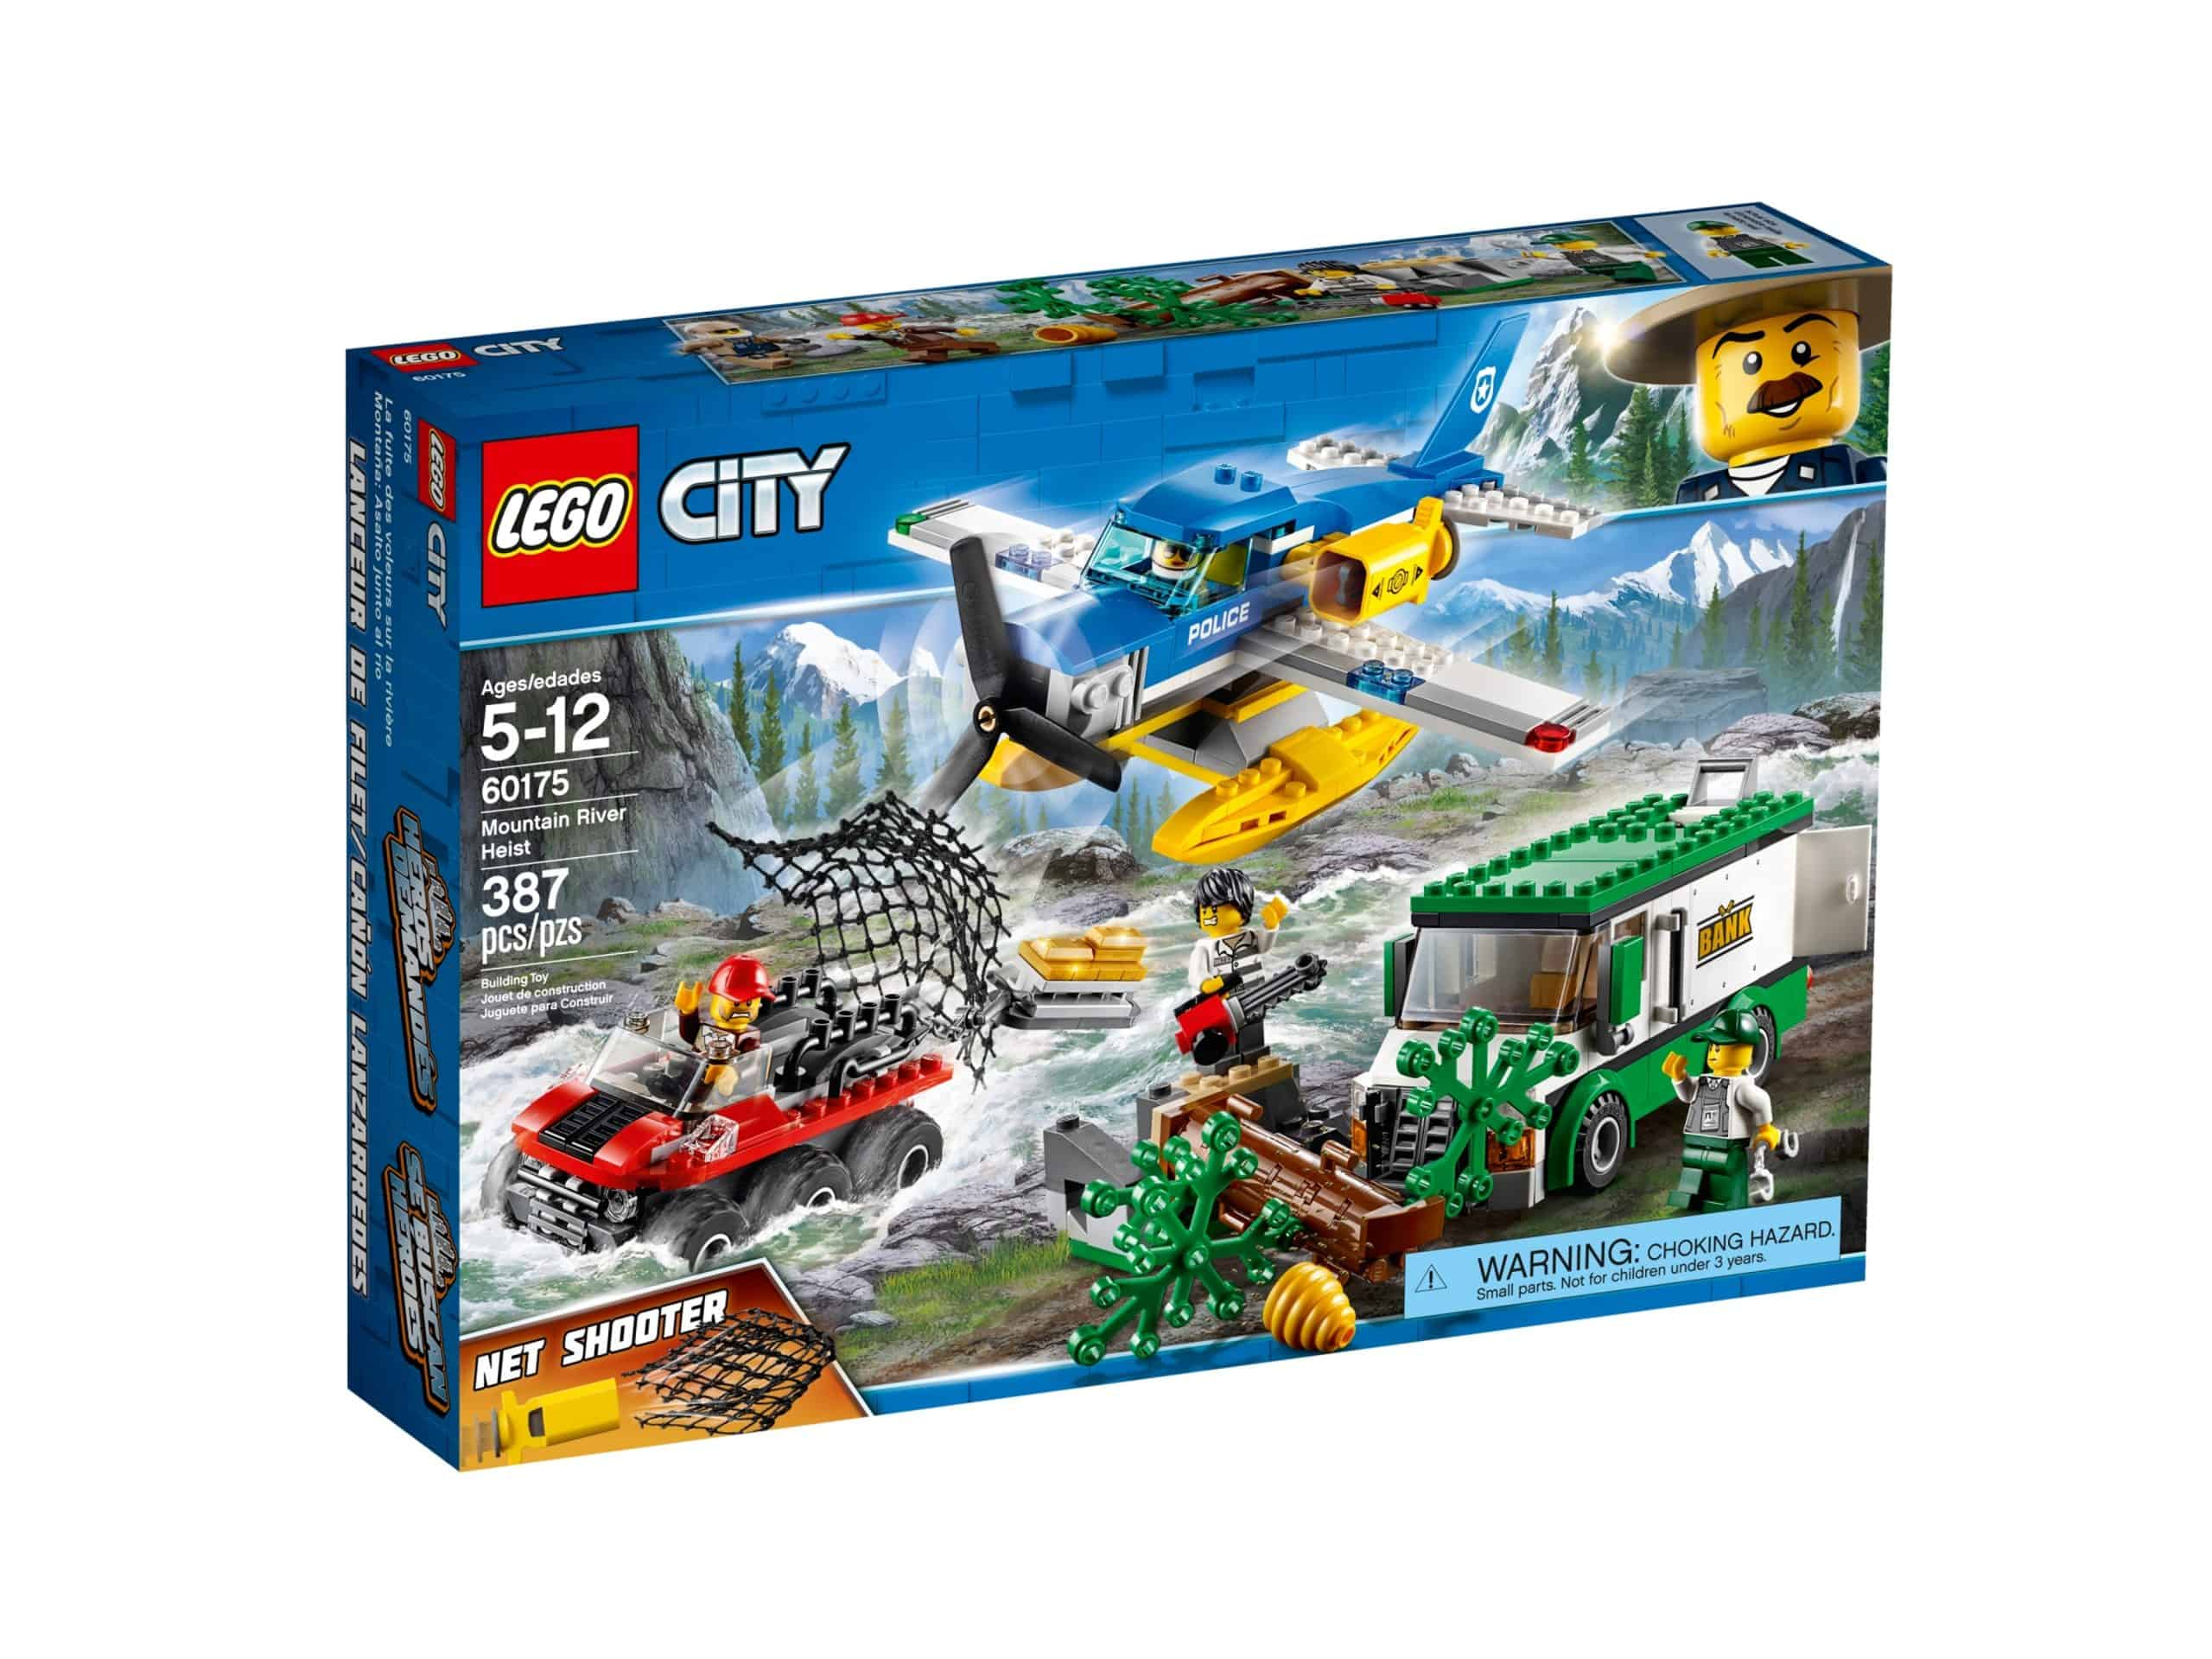 lego 60175 kup ved bjergfloden scaled